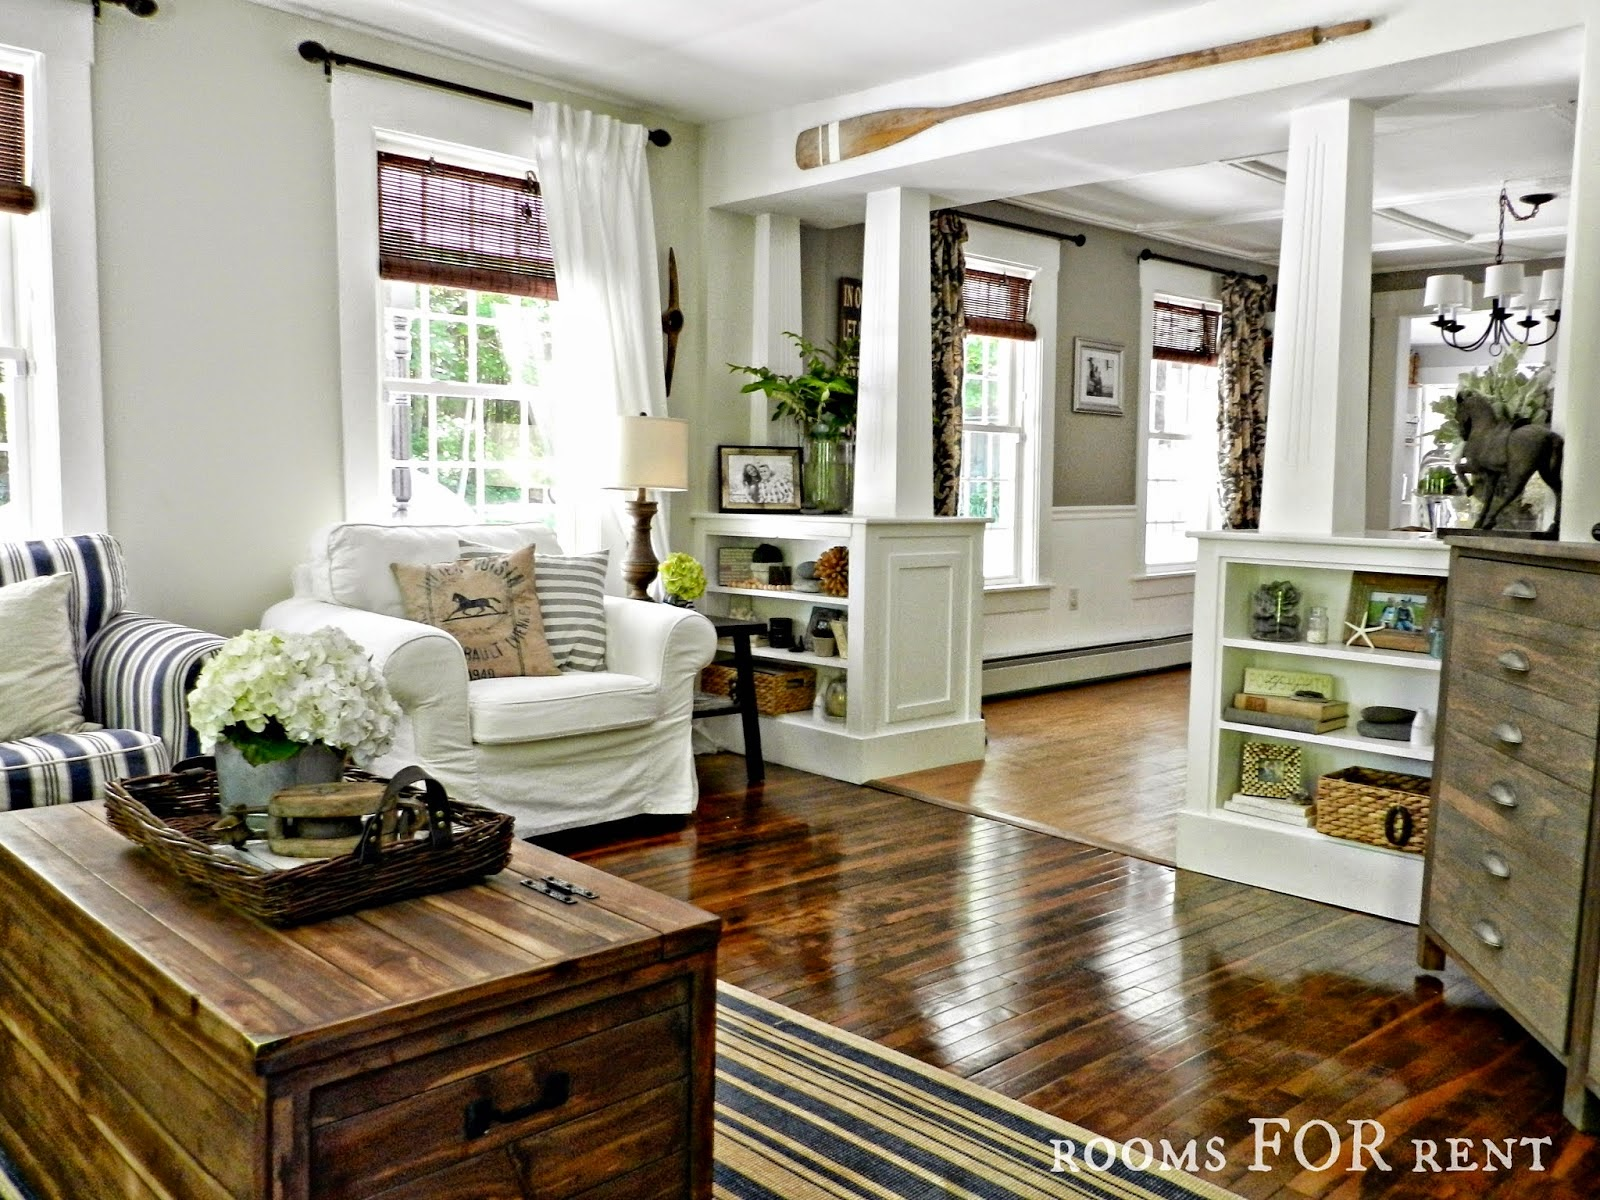 Designdreams by anne open house sundays 17 rooms for rent for Family room columns